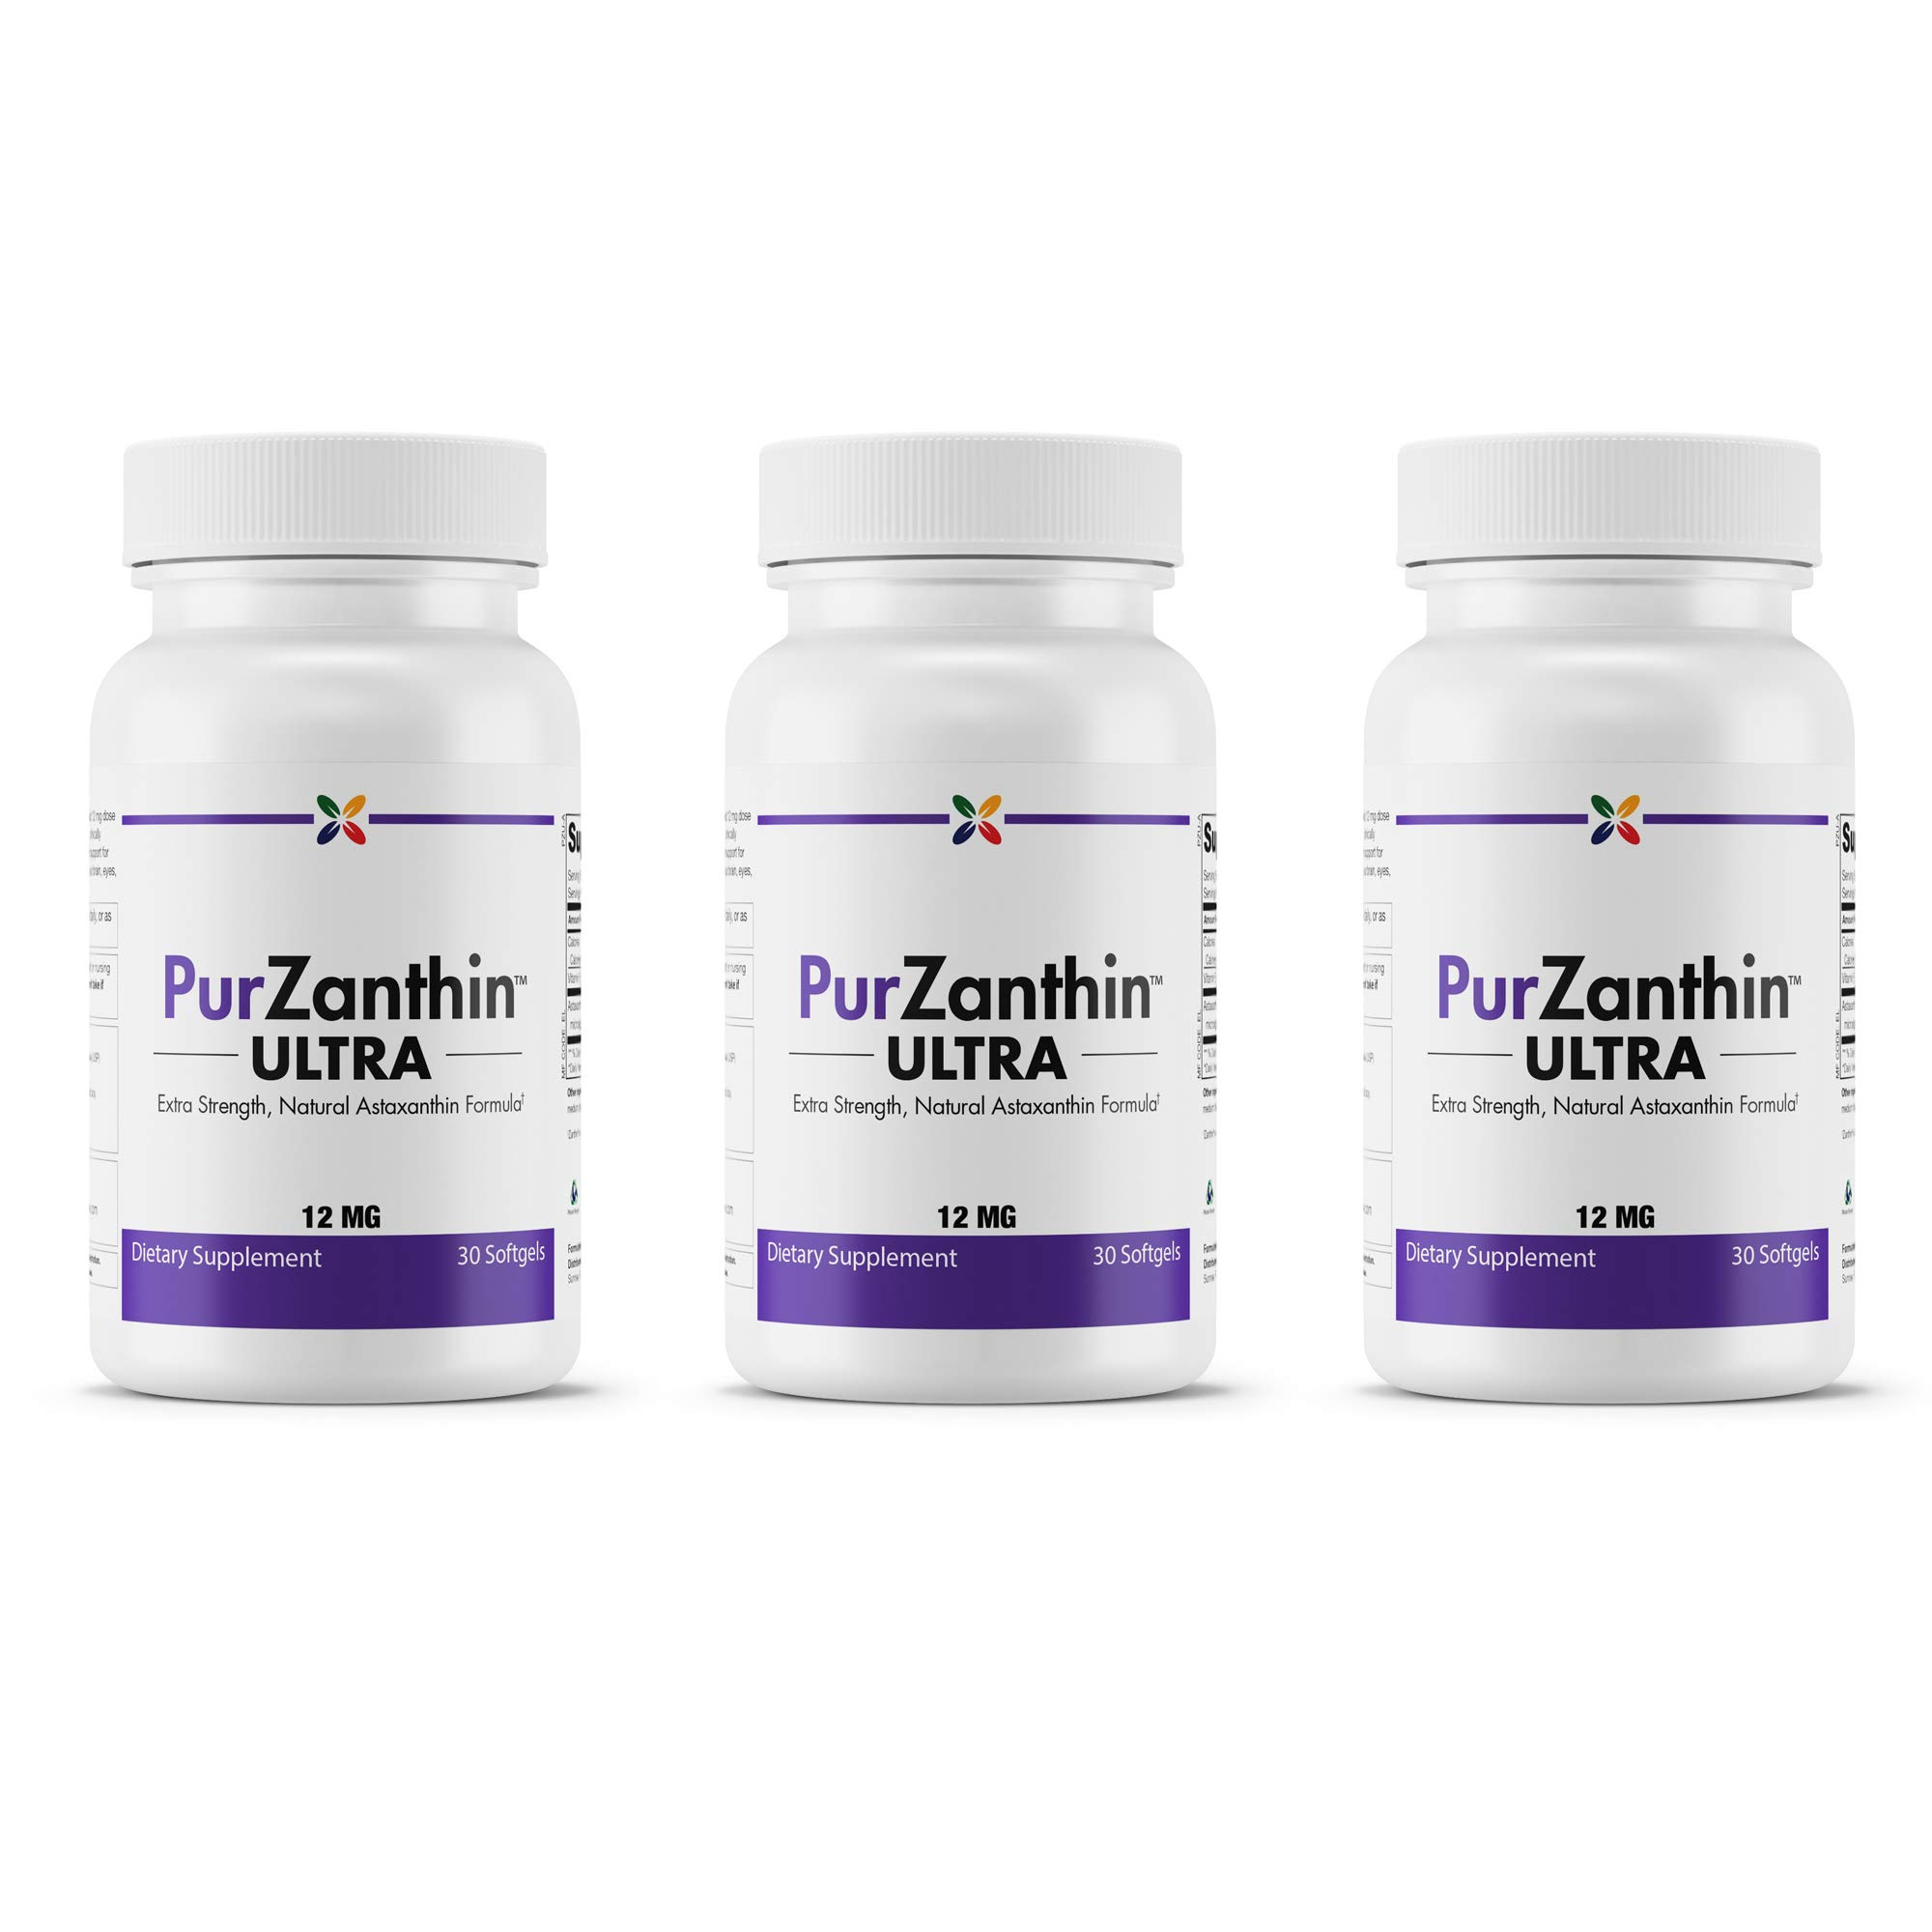 Stop Aging Now - PurZanthin Ultra Natural Astaxanthin 12 mg - Extra Strength Natural Astaxanthin Formula - 90 Softgels (3 Bottles)